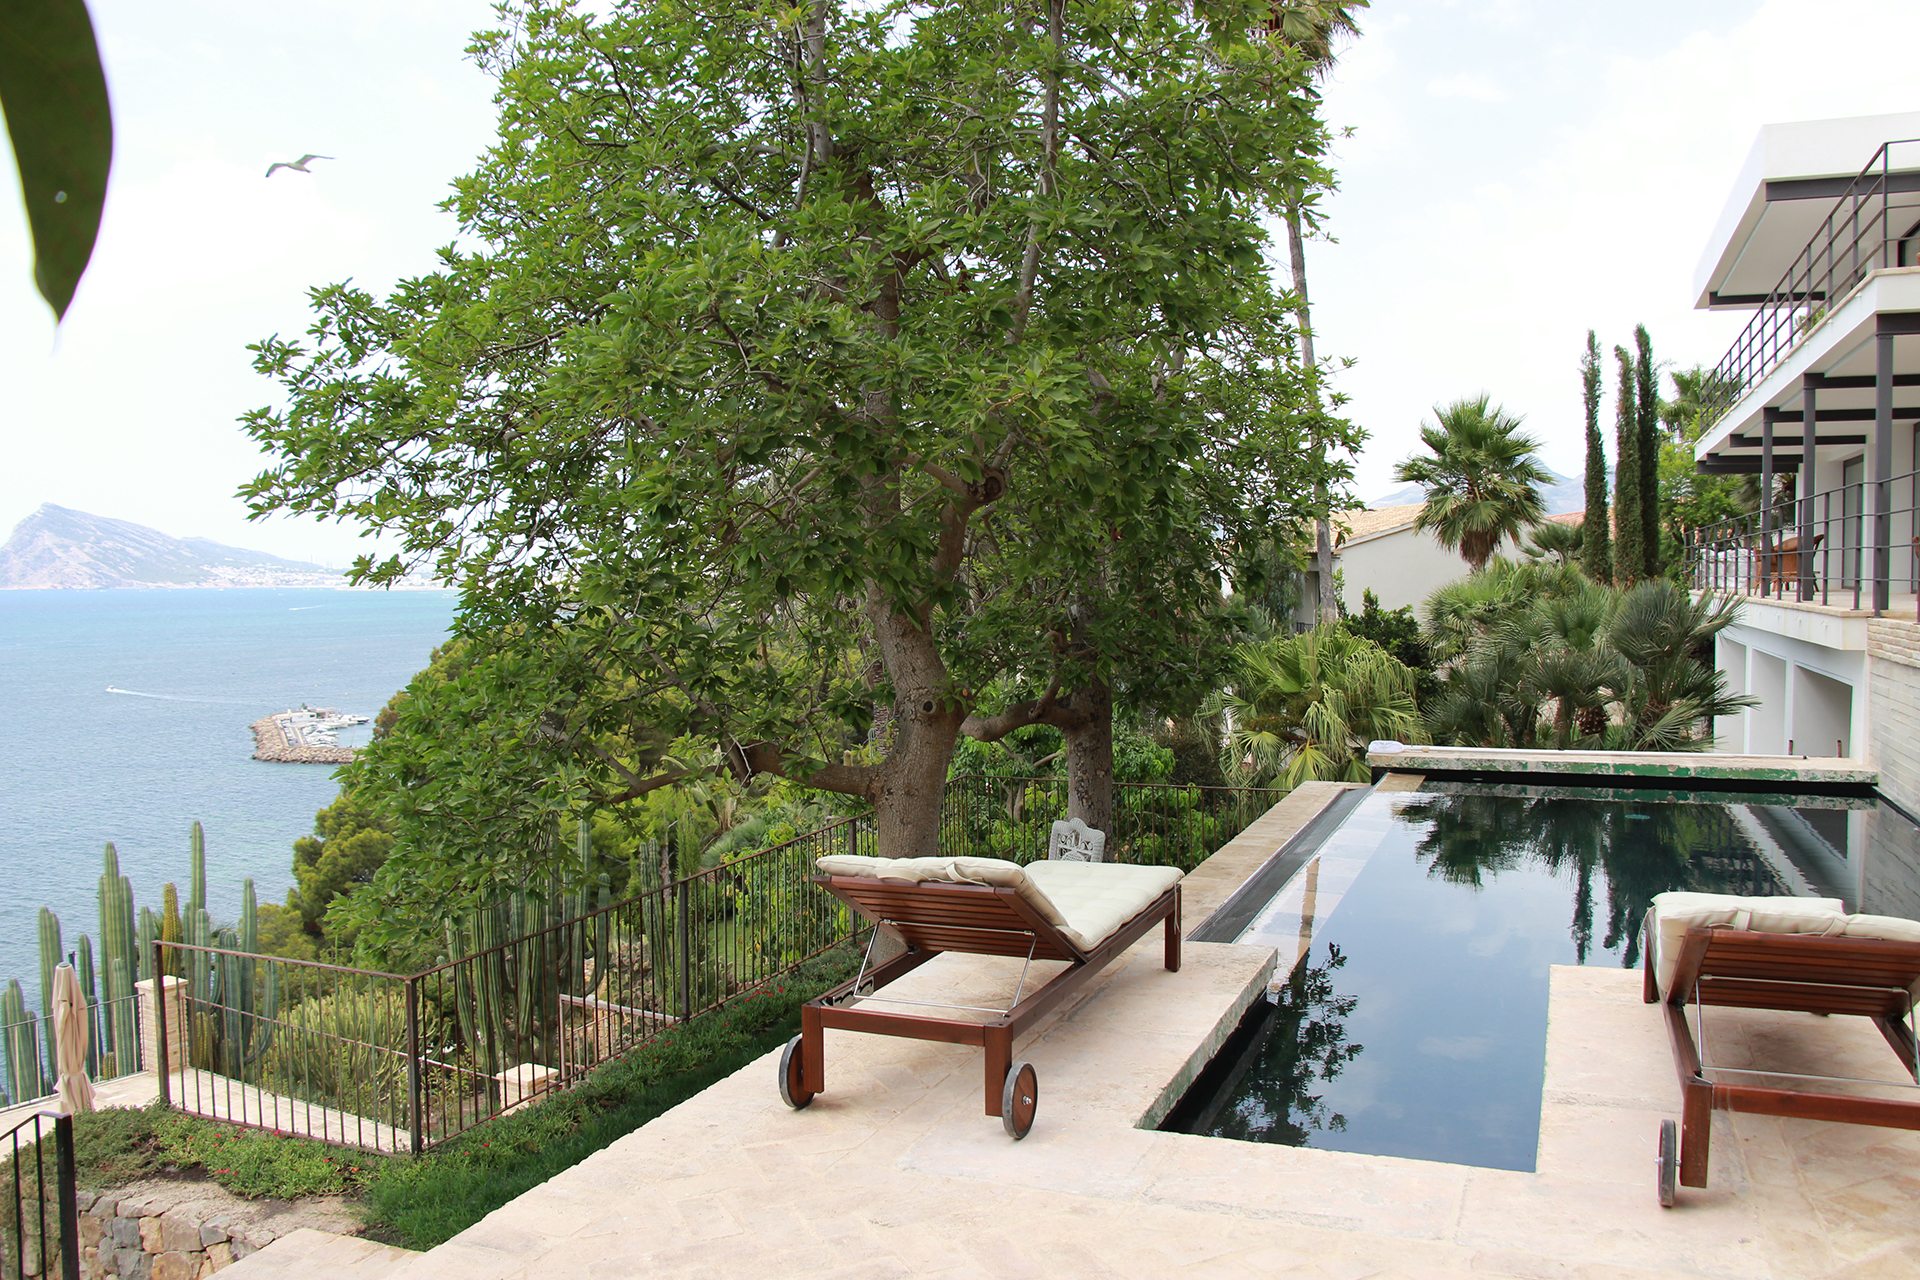 luxury villa rental, Spain, ESPALT 771